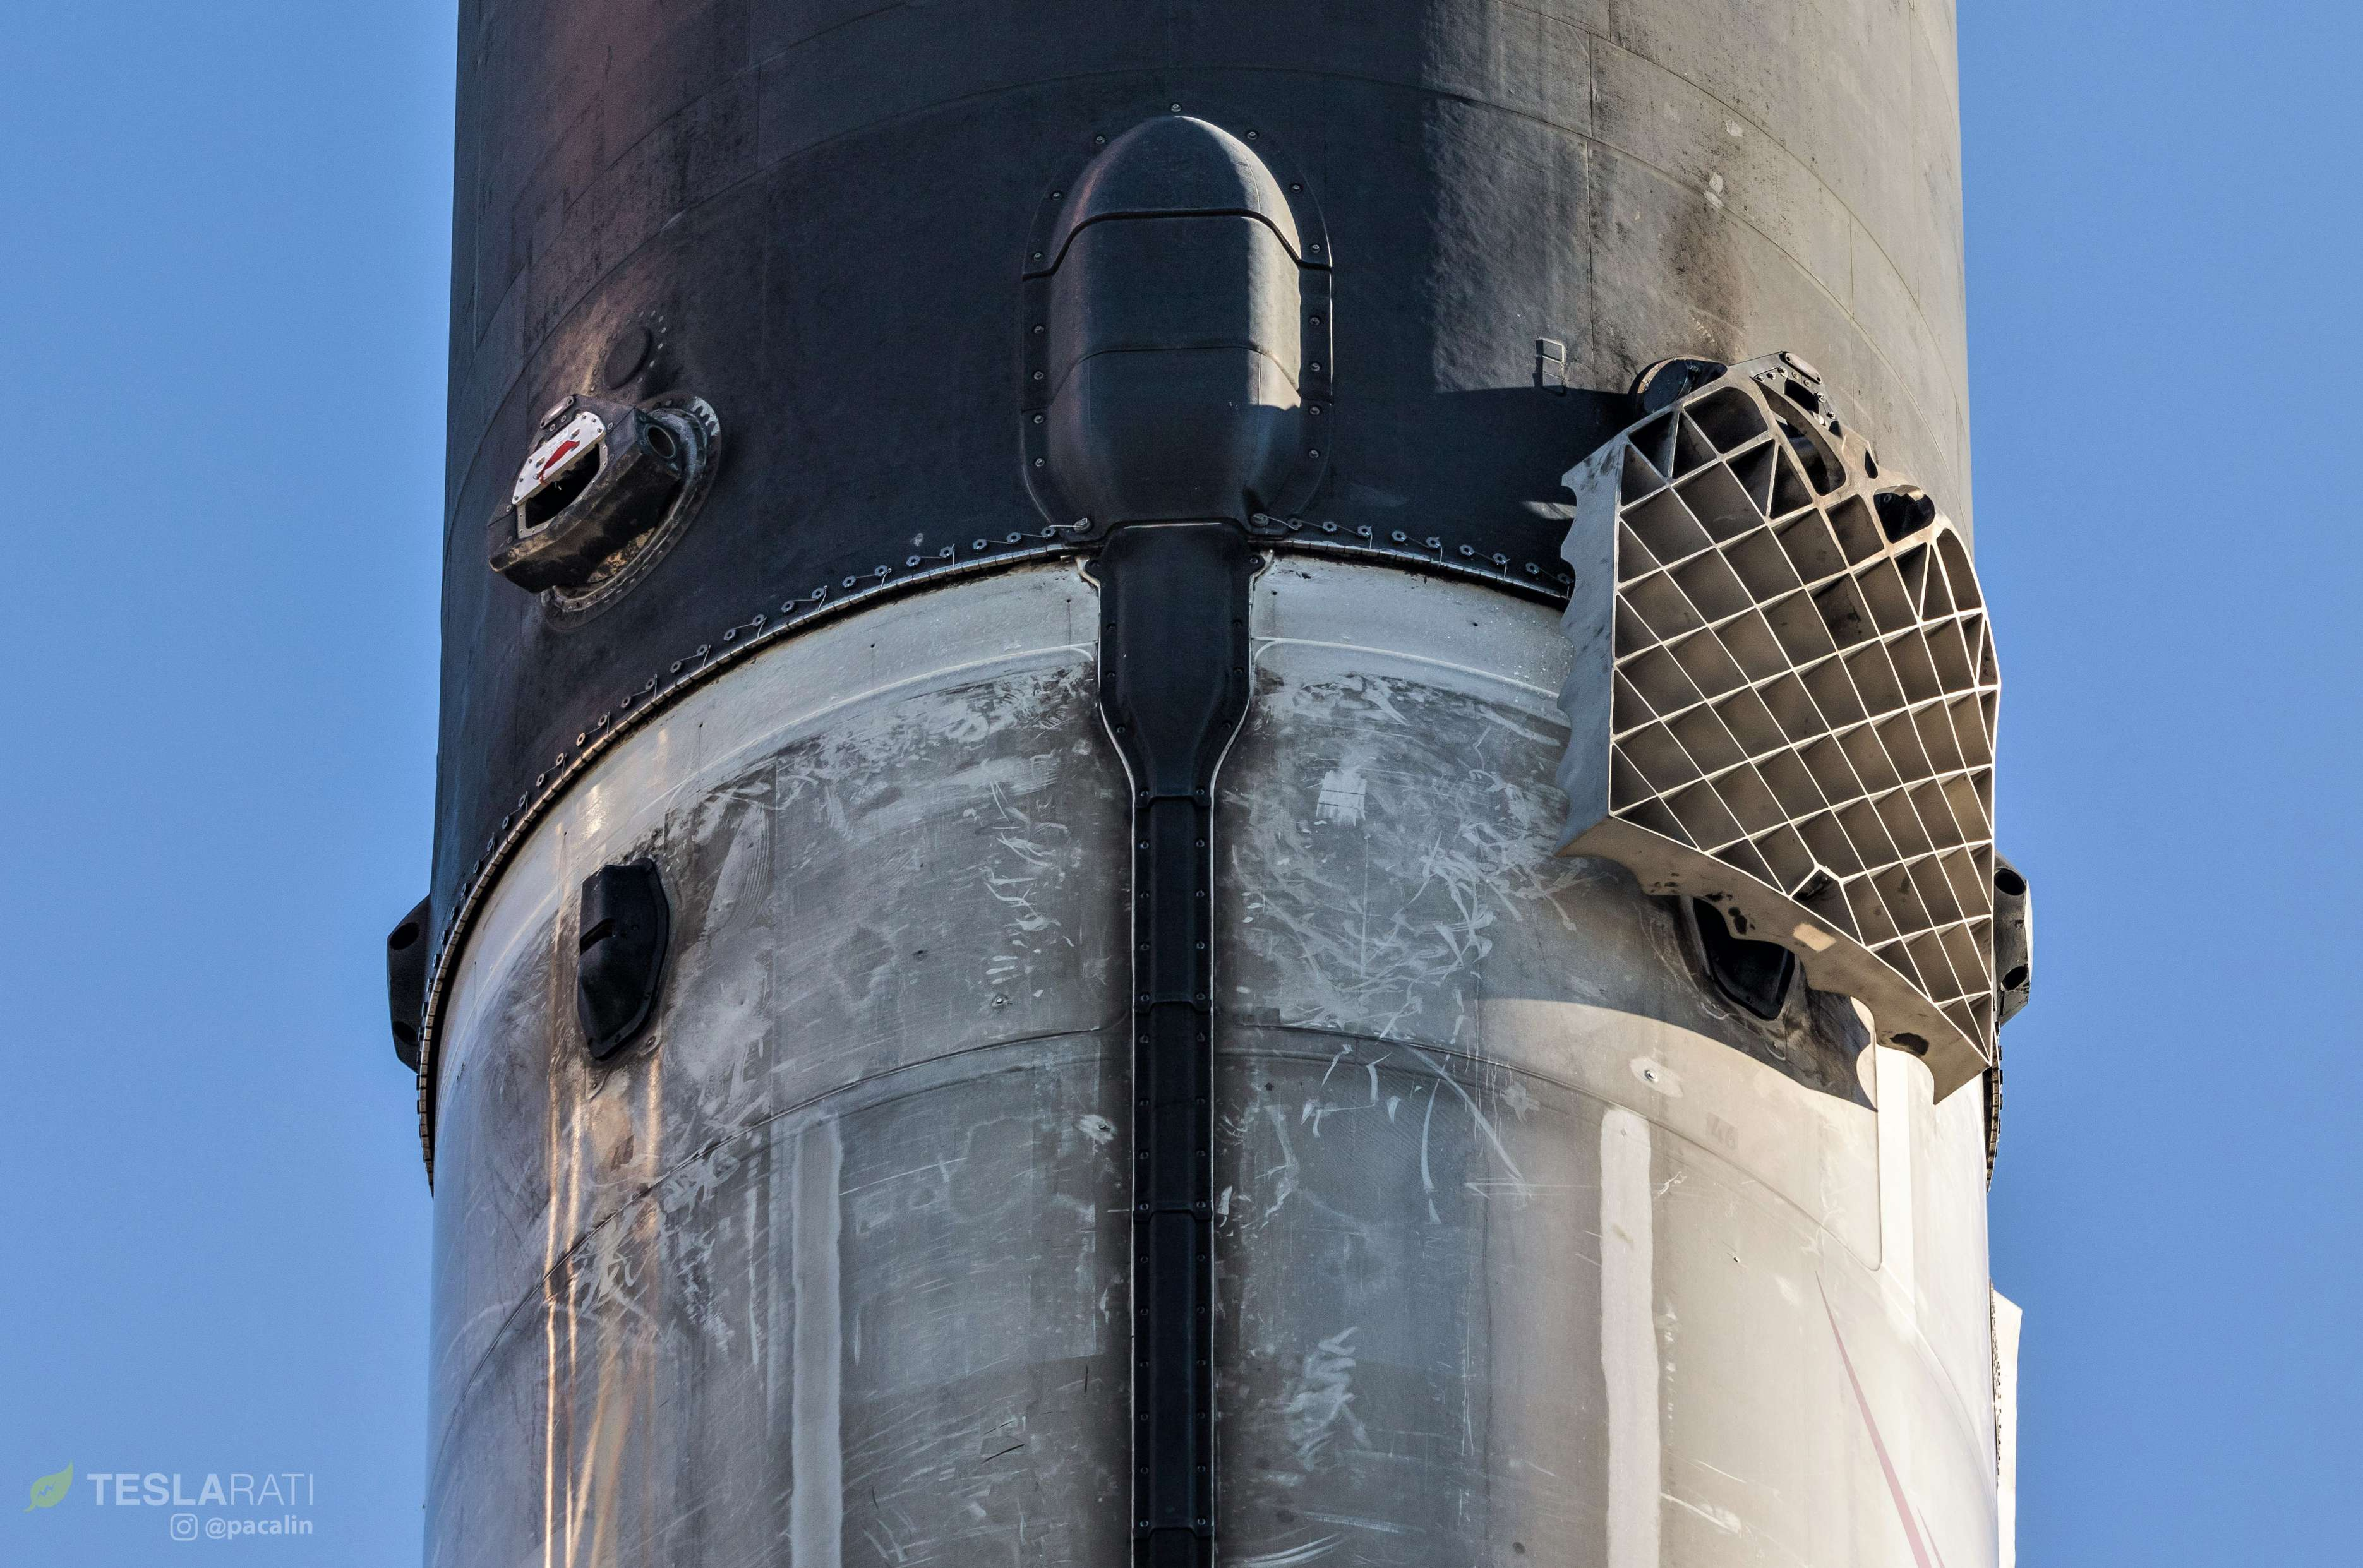 SpaceX caps major Falcon 9 Block 5 reuse with spectacular